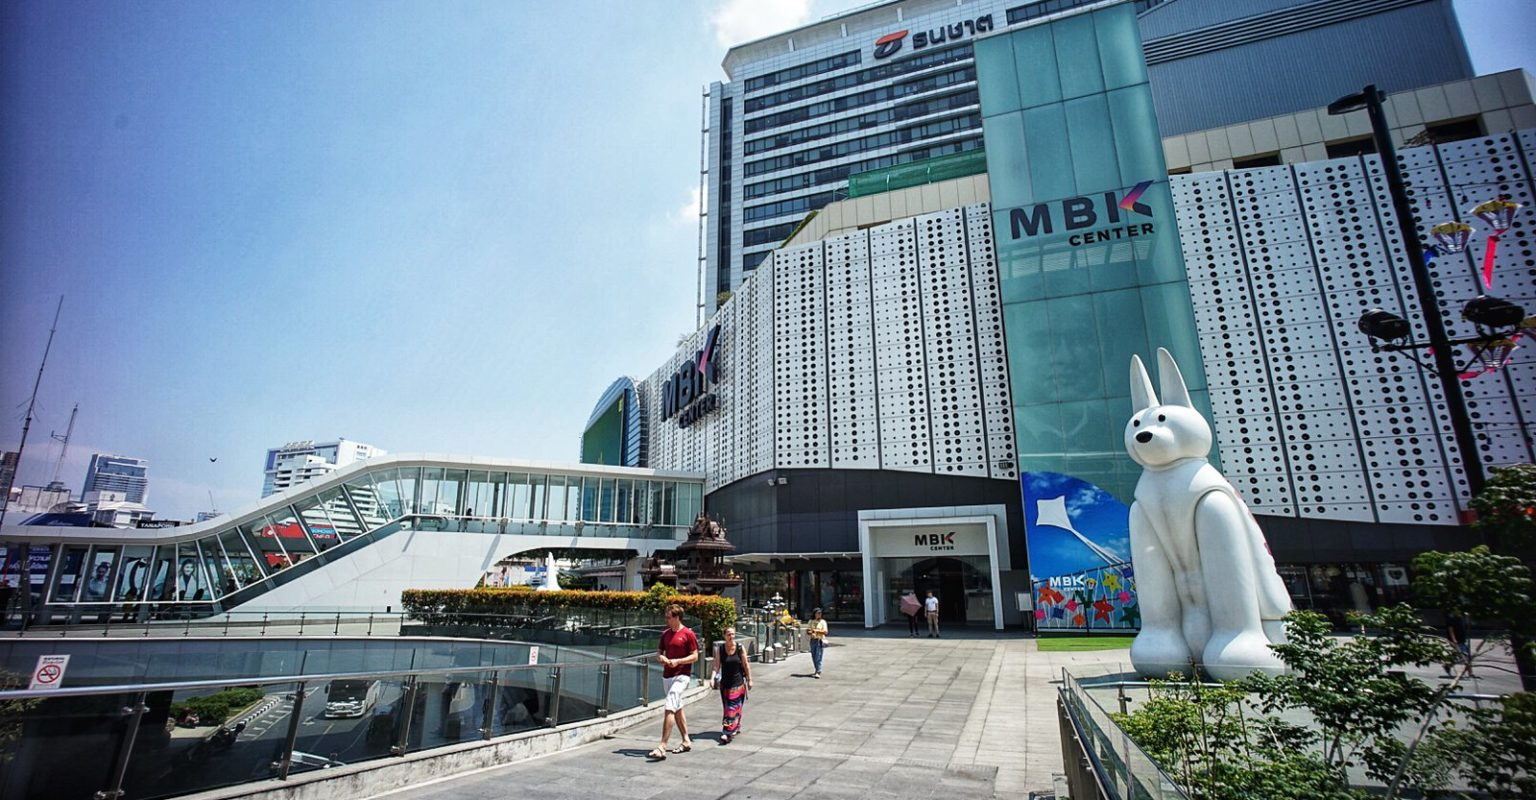 Siam Square, plein voor shopping mall MBK